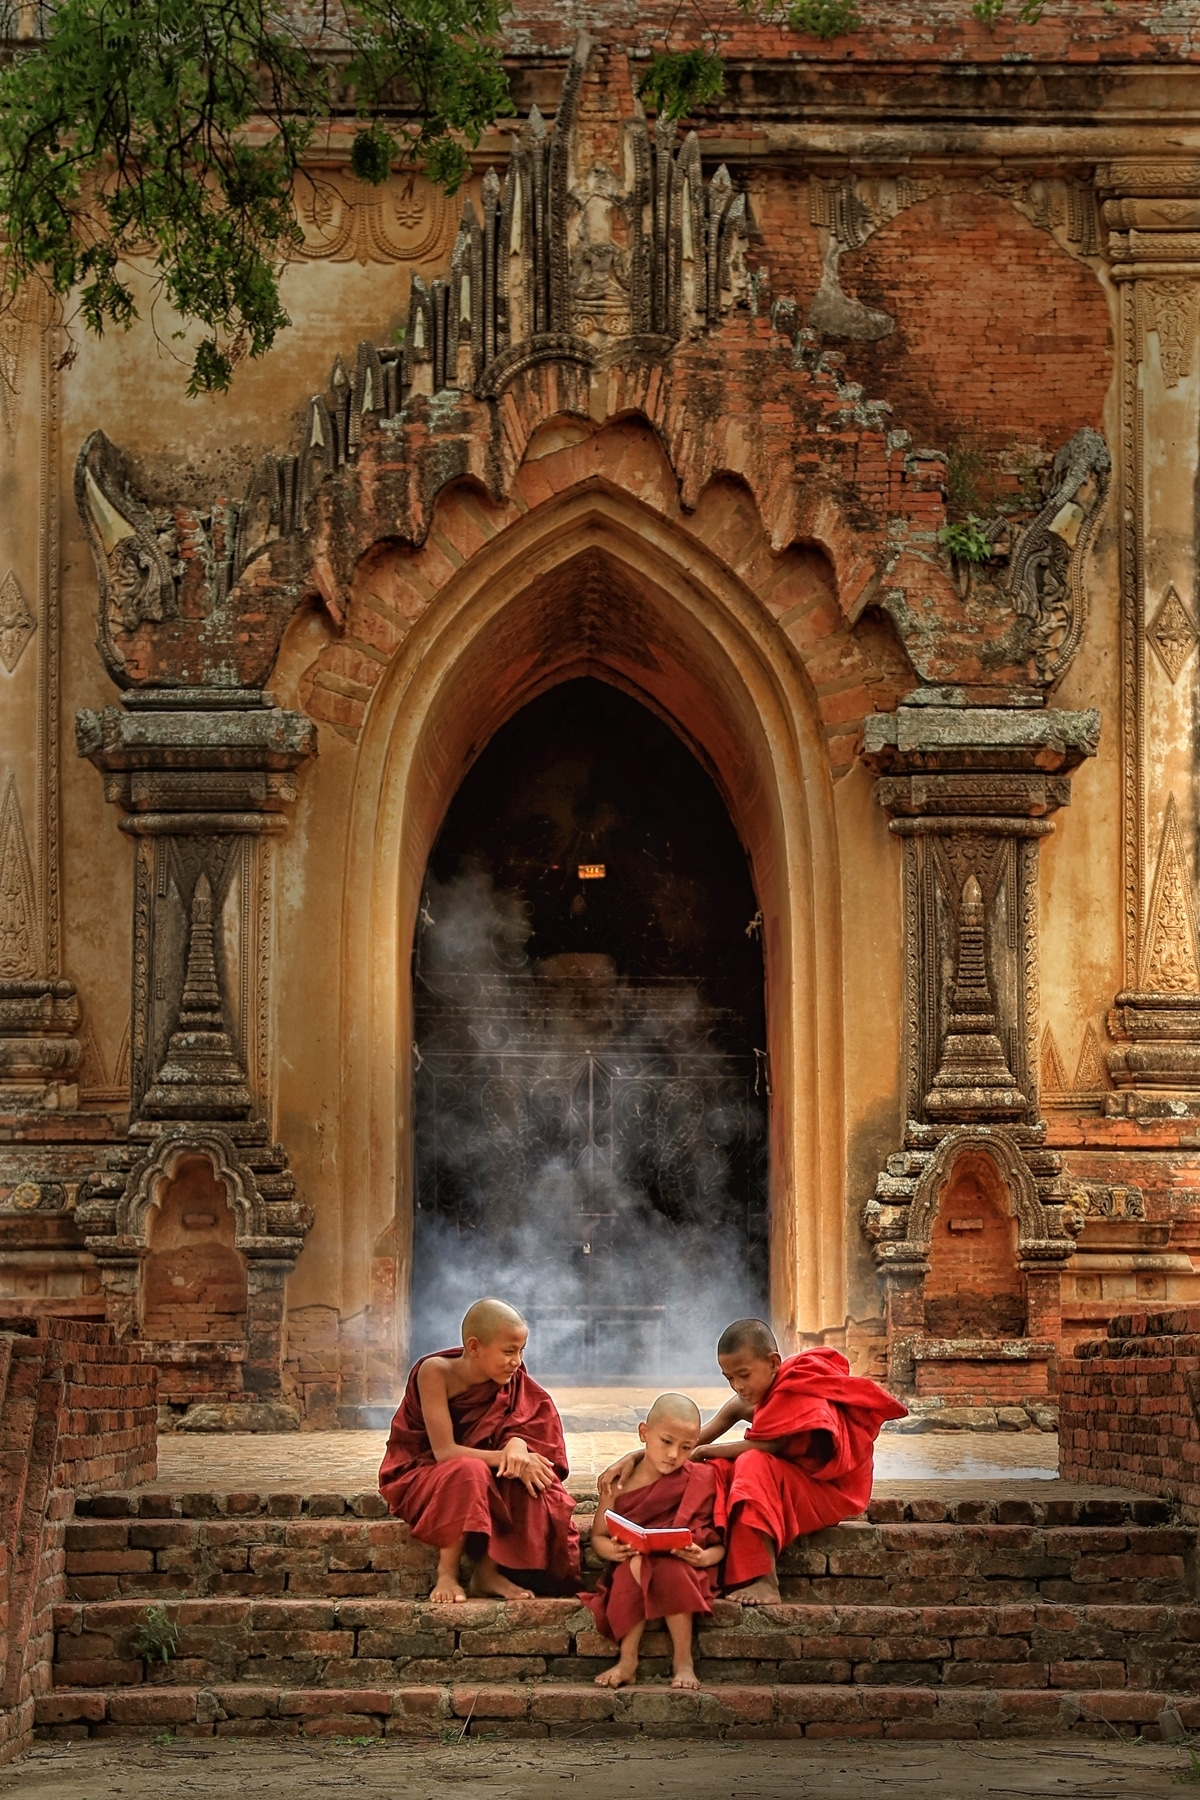 Young monks reading while sitting on the steps of an ancient building